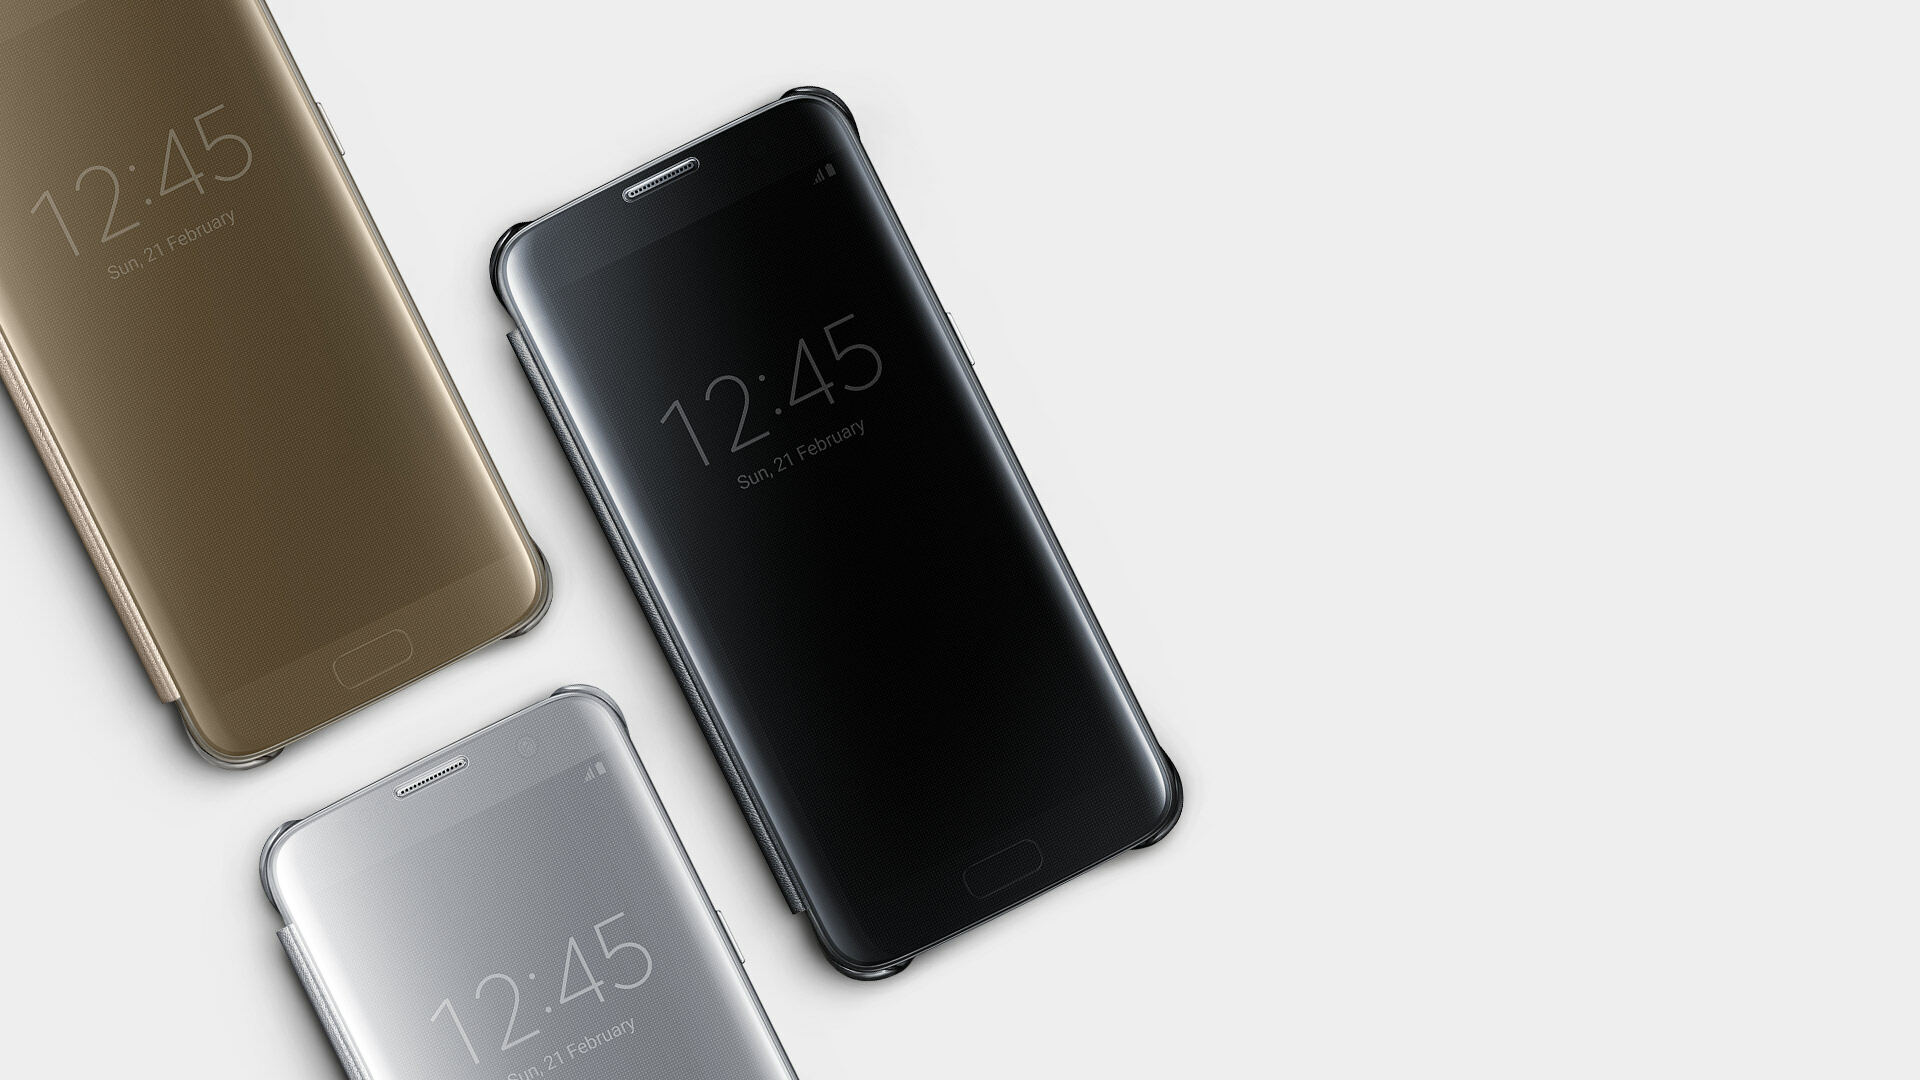 galaxy-s7-edge_accessories_clearview - Ausdroid